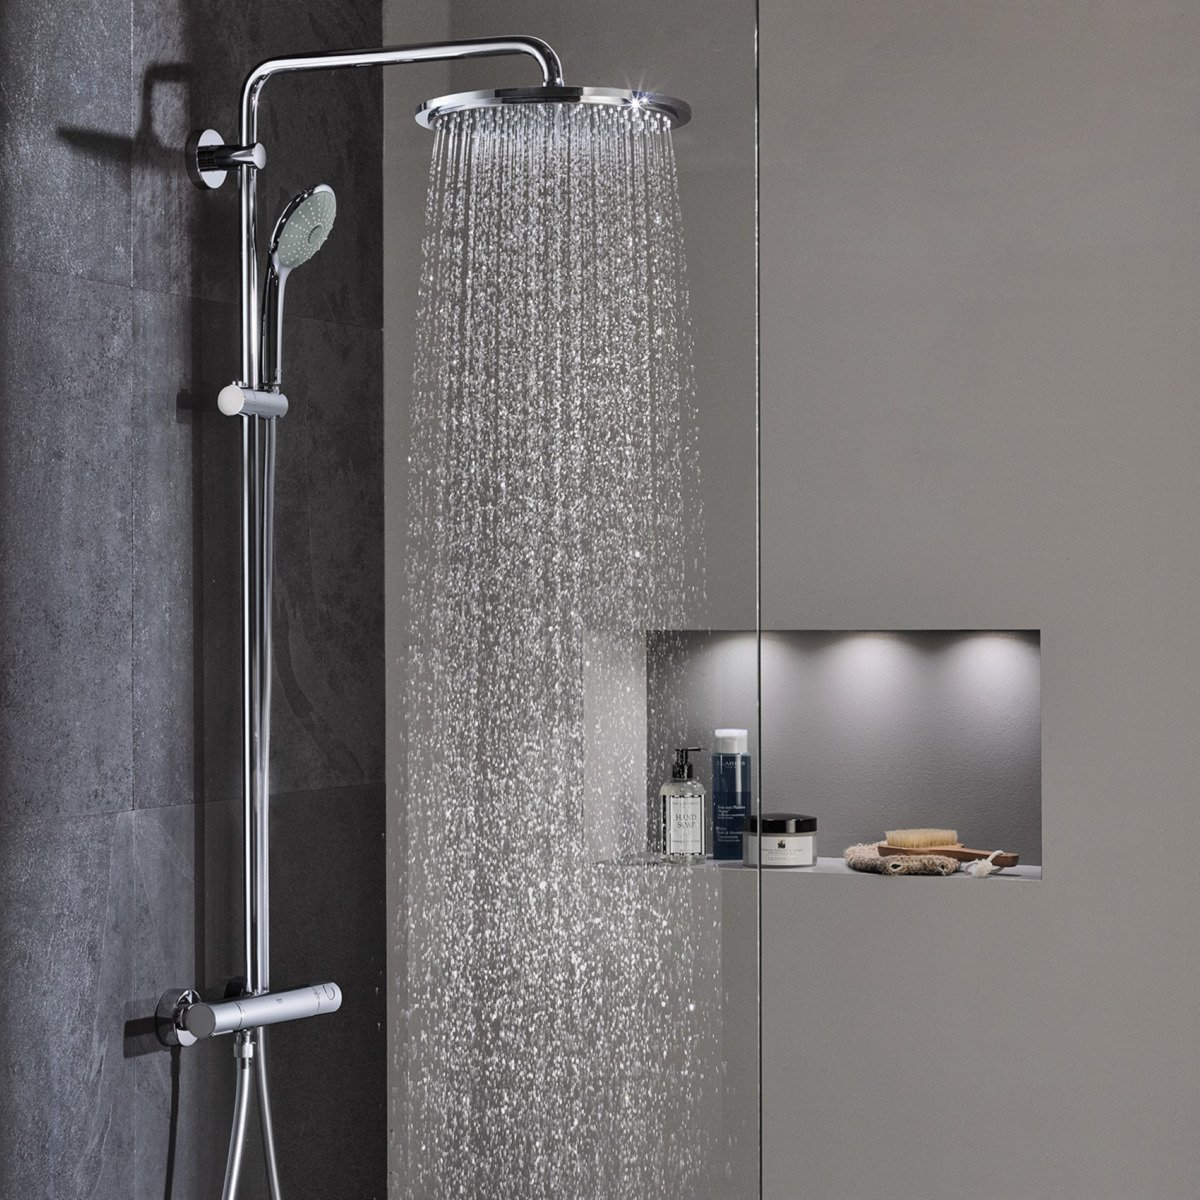 grohe euphoria xxl ensemle de douche avec robinet. Black Bedroom Furniture Sets. Home Design Ideas